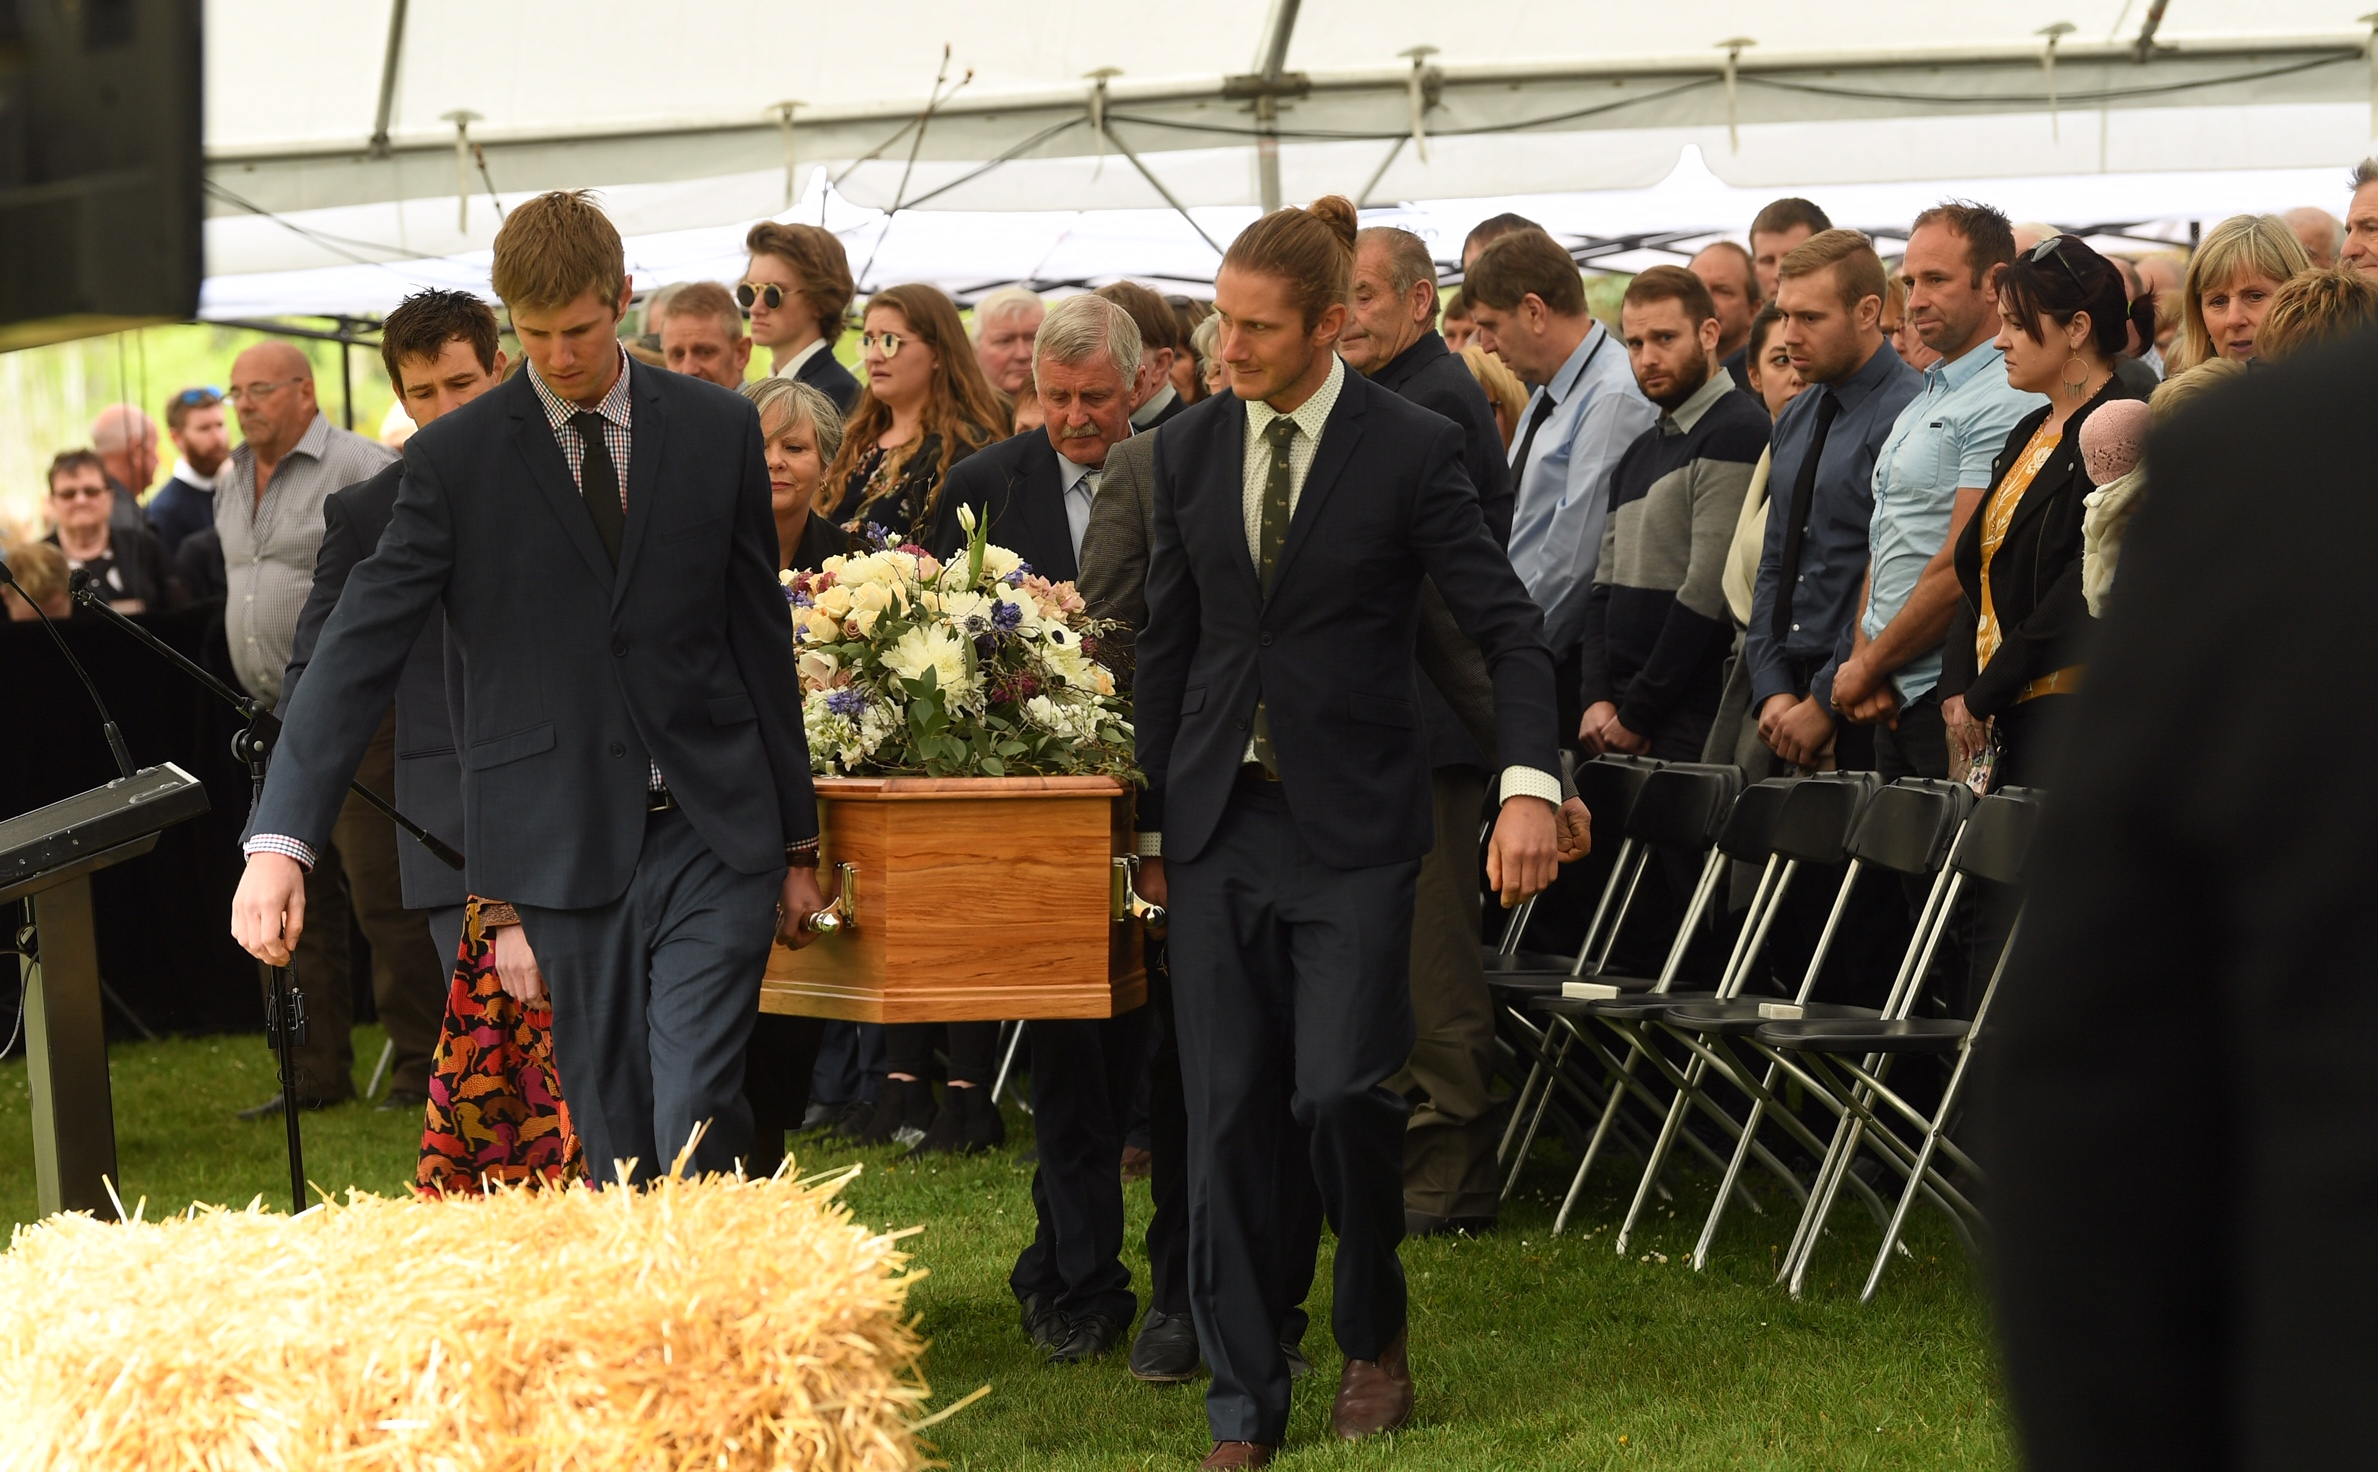 The casket with Nadine and her son Angus Tomlinson is carried to their funeral service. Photo: ODT